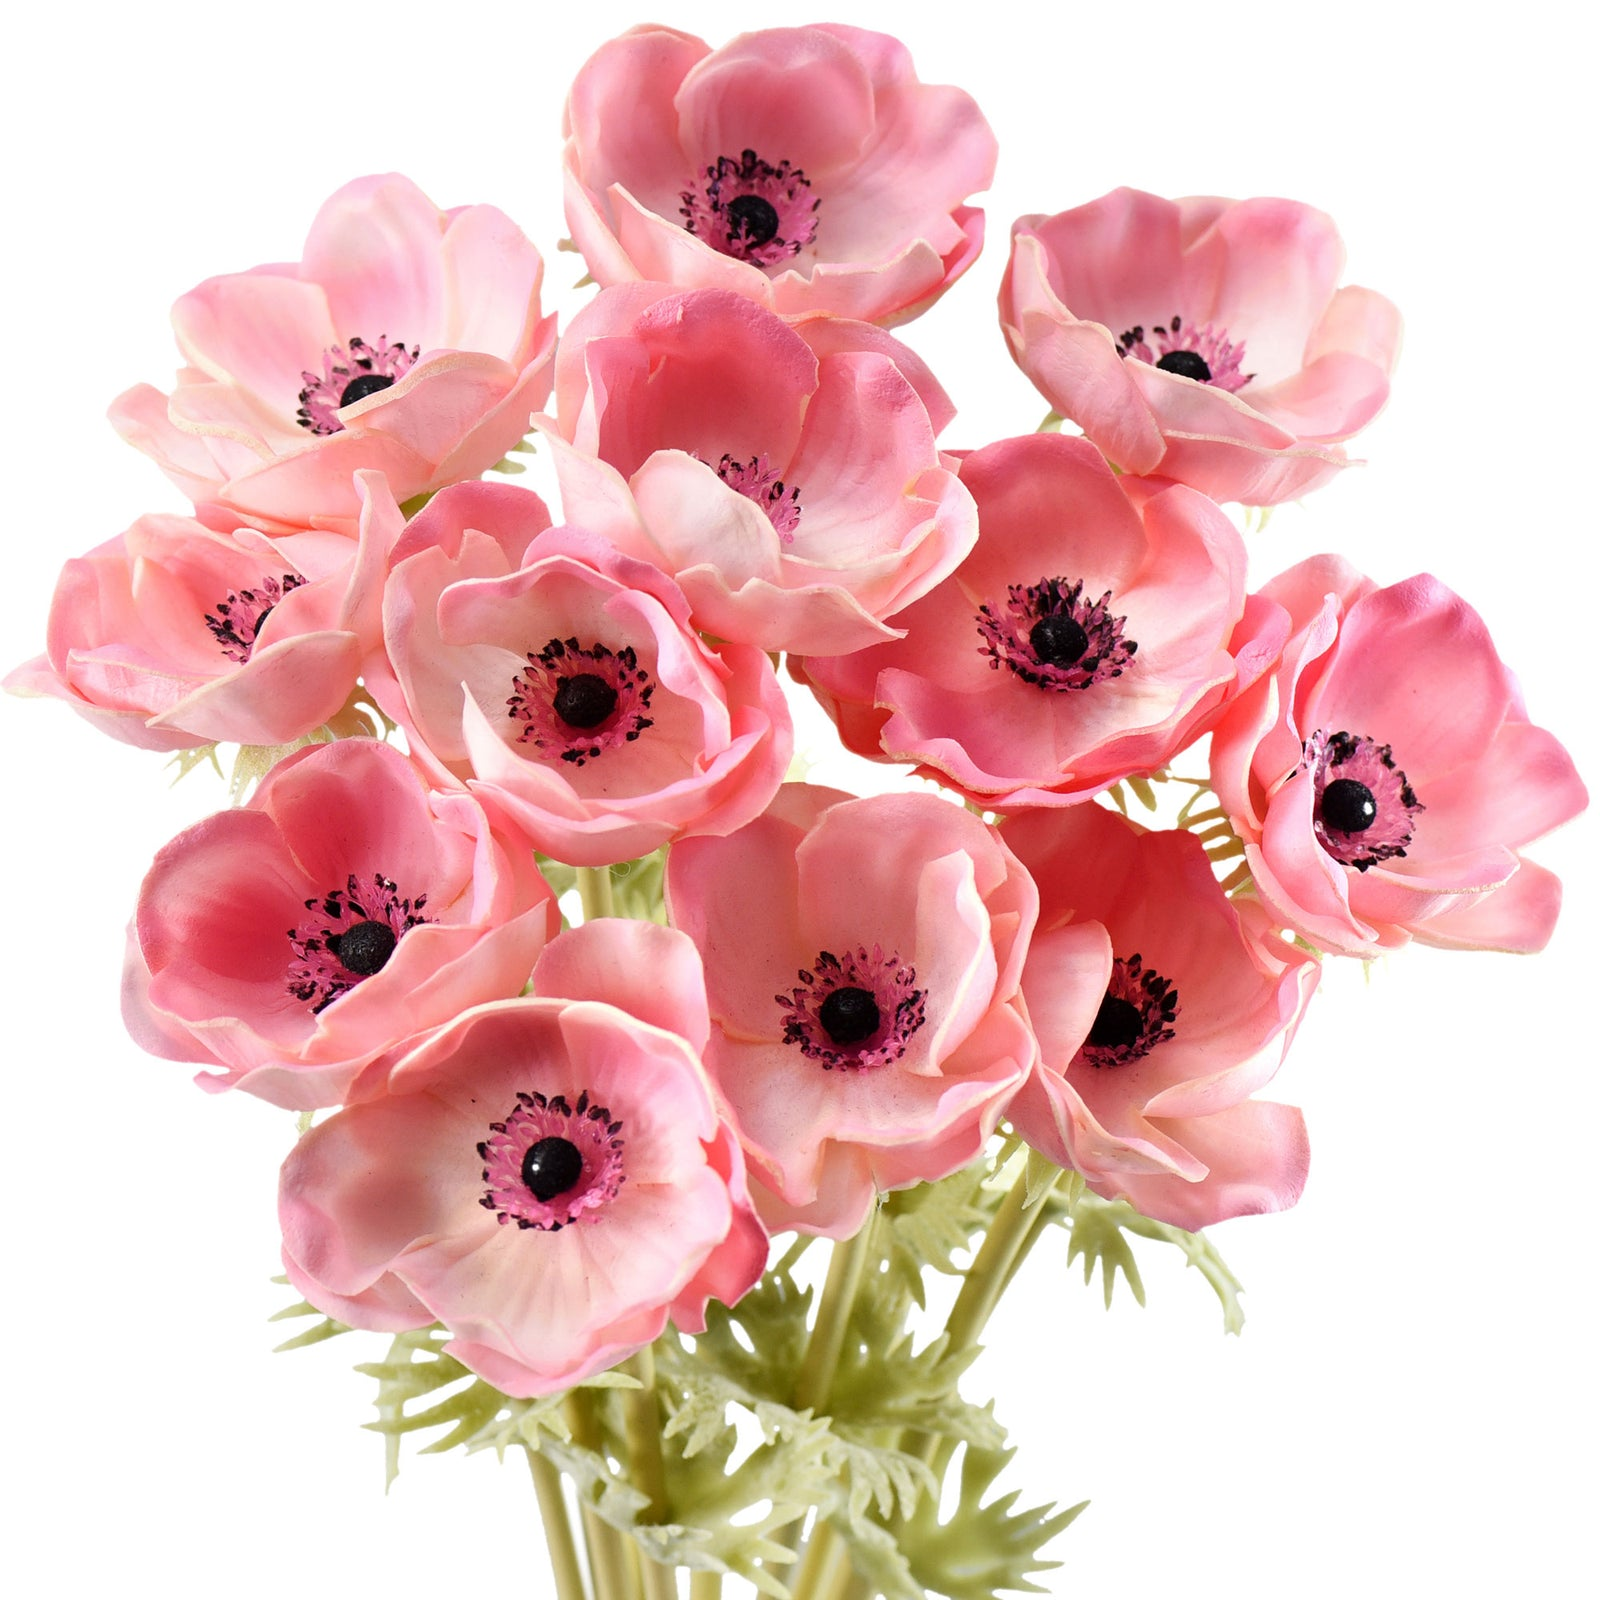 12 Long Stems of 'Real Touch' Artificial (Pink) Anemone Flowers, Wedding Bouquet Flower Arrangement, 45cm (17.7 inches)